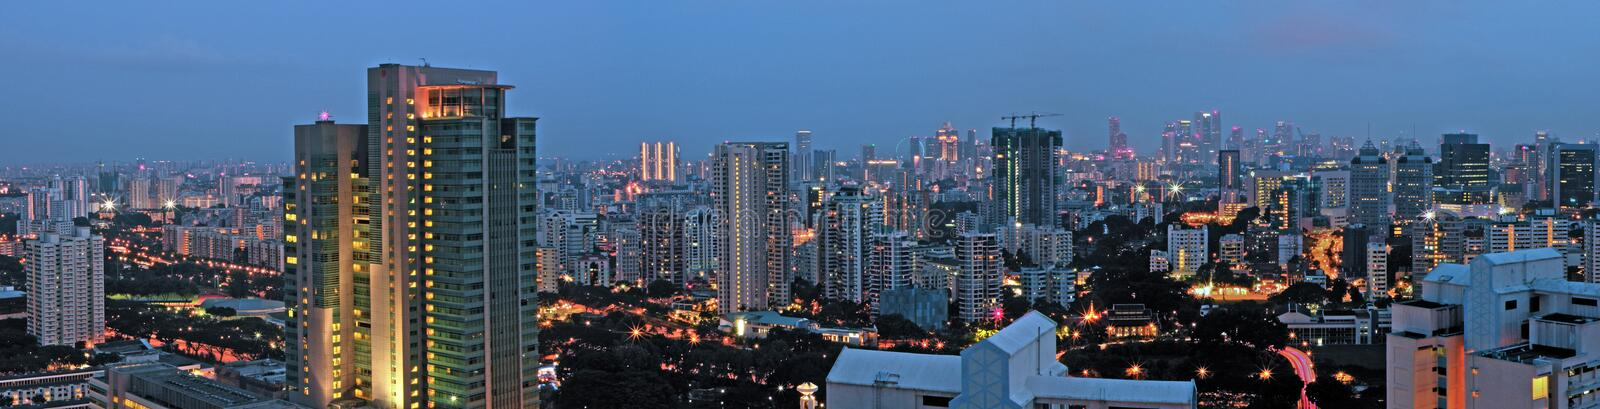 Download Evening City Skyline Panorama Singapore Stock Photo - Image: 9017870